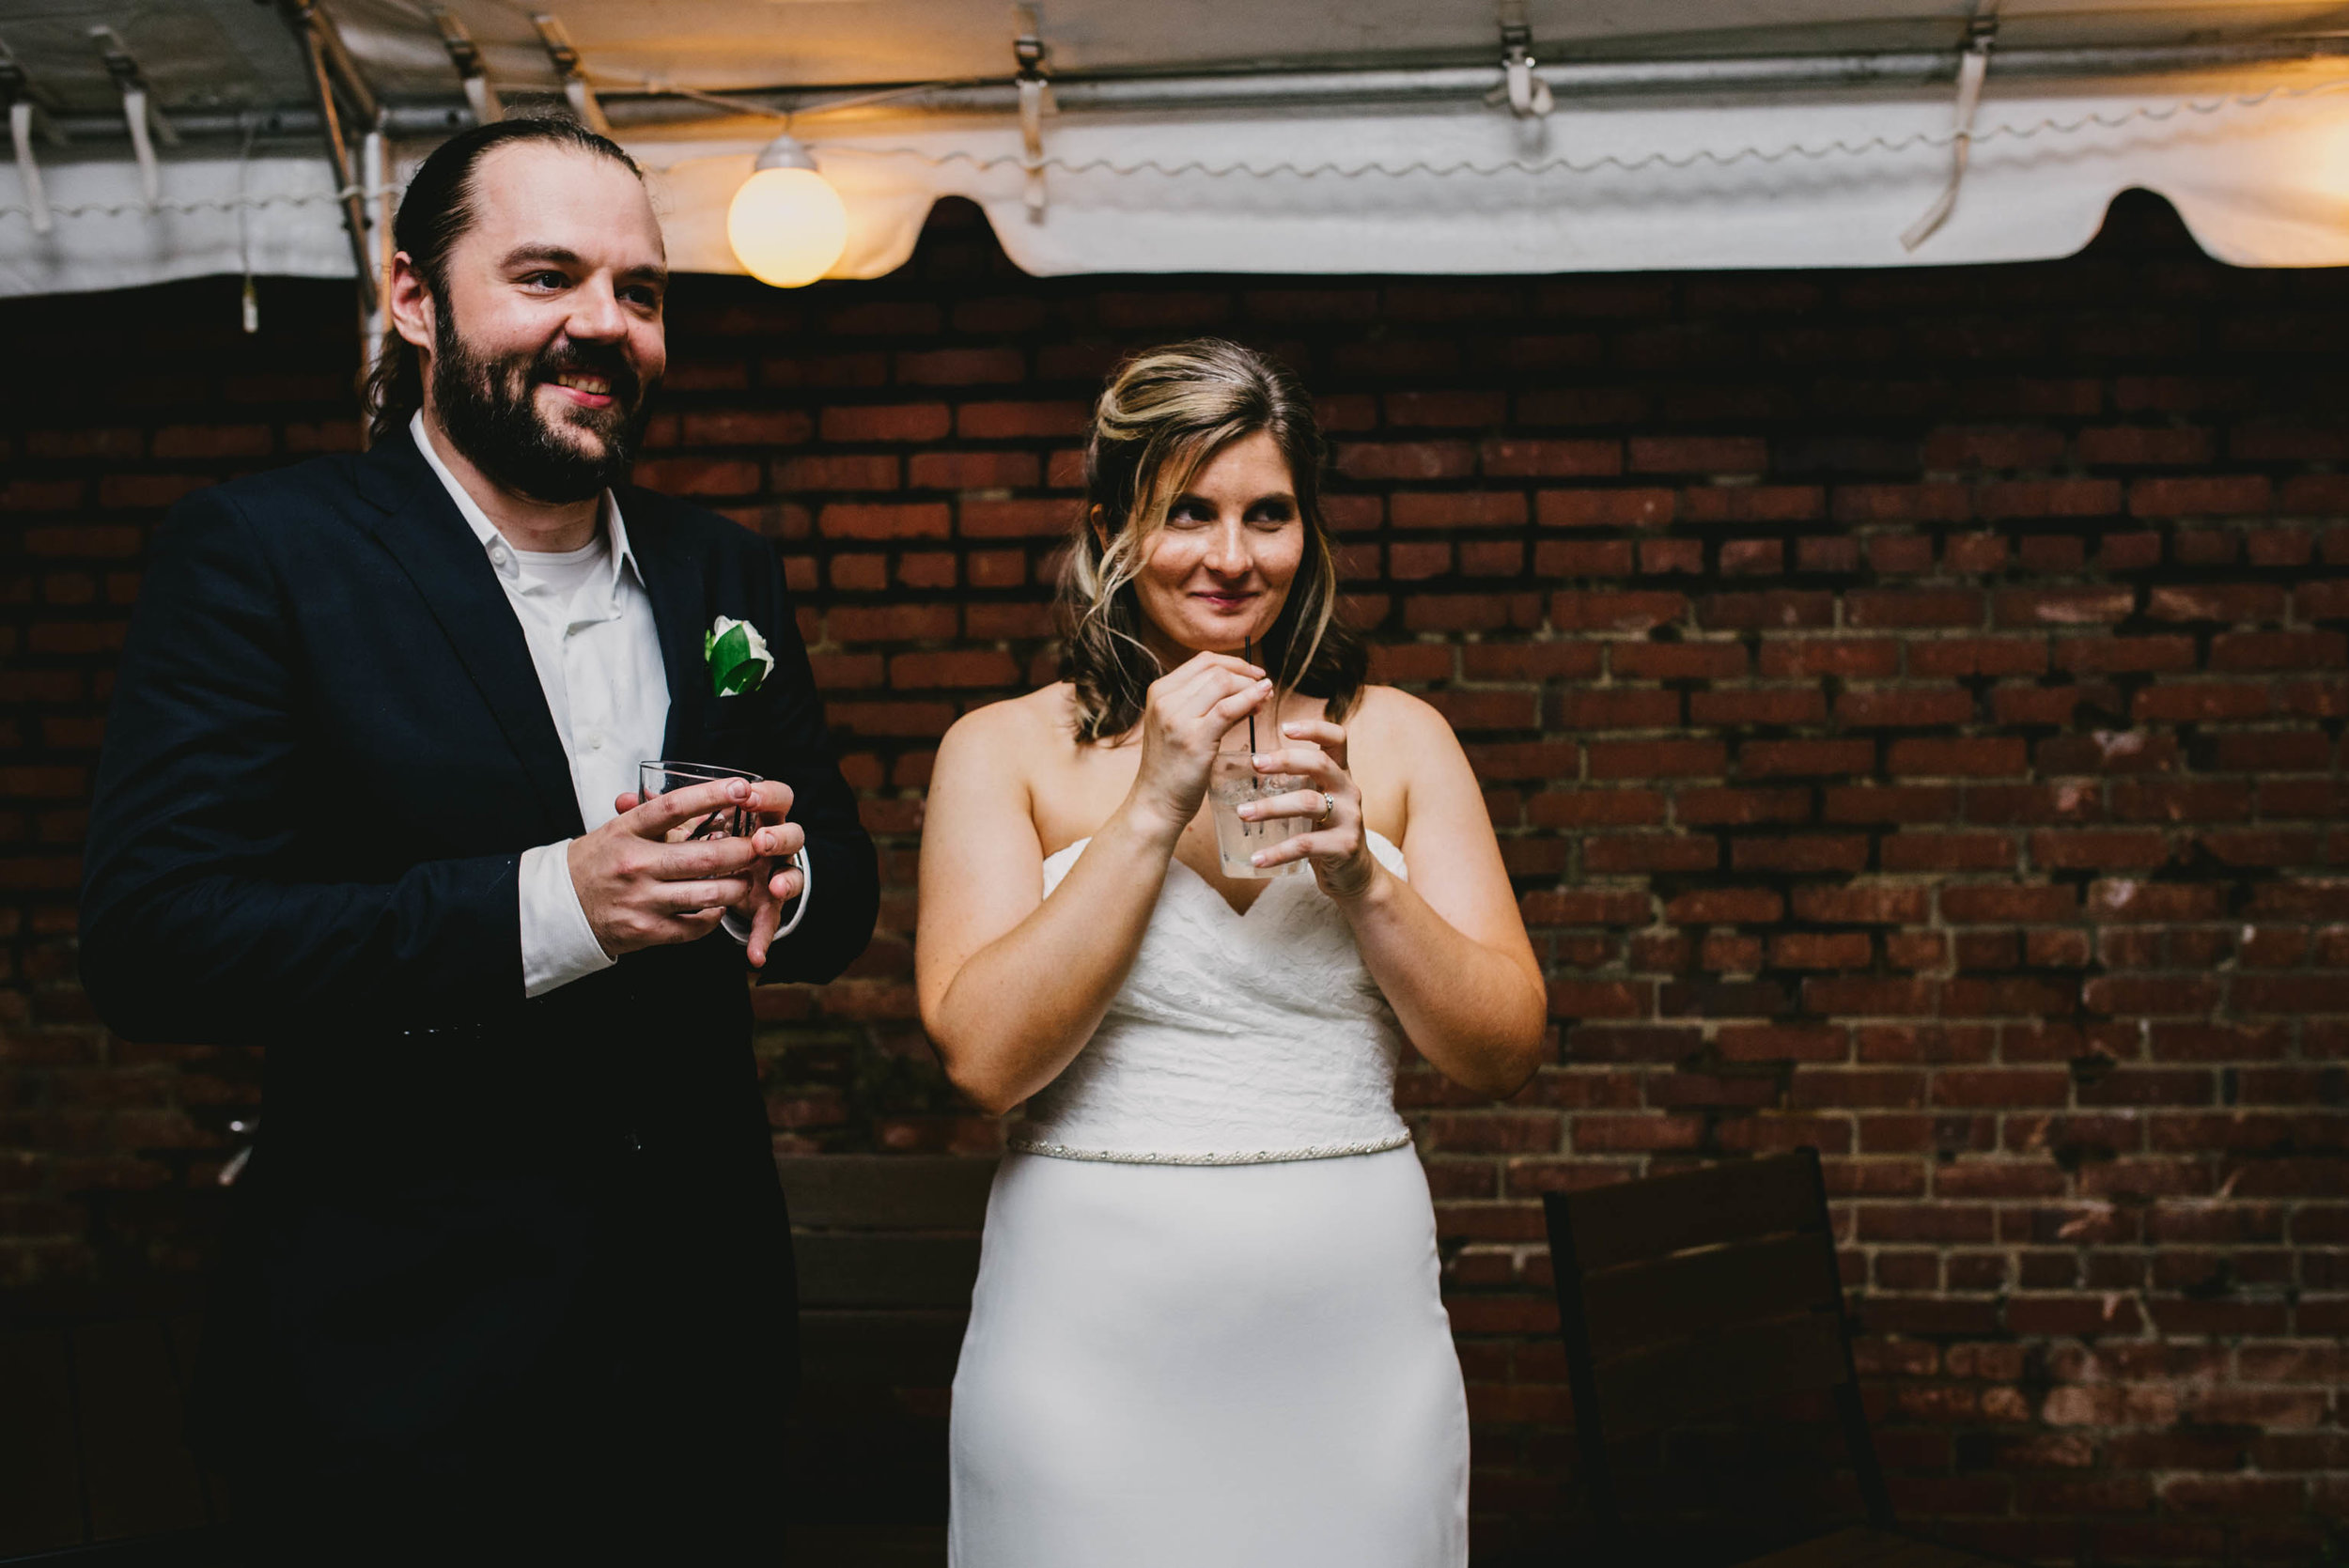 bride and groom laughing during toasts at their Jiddi Space and Courtyard Wedding at Sitti Restaurant